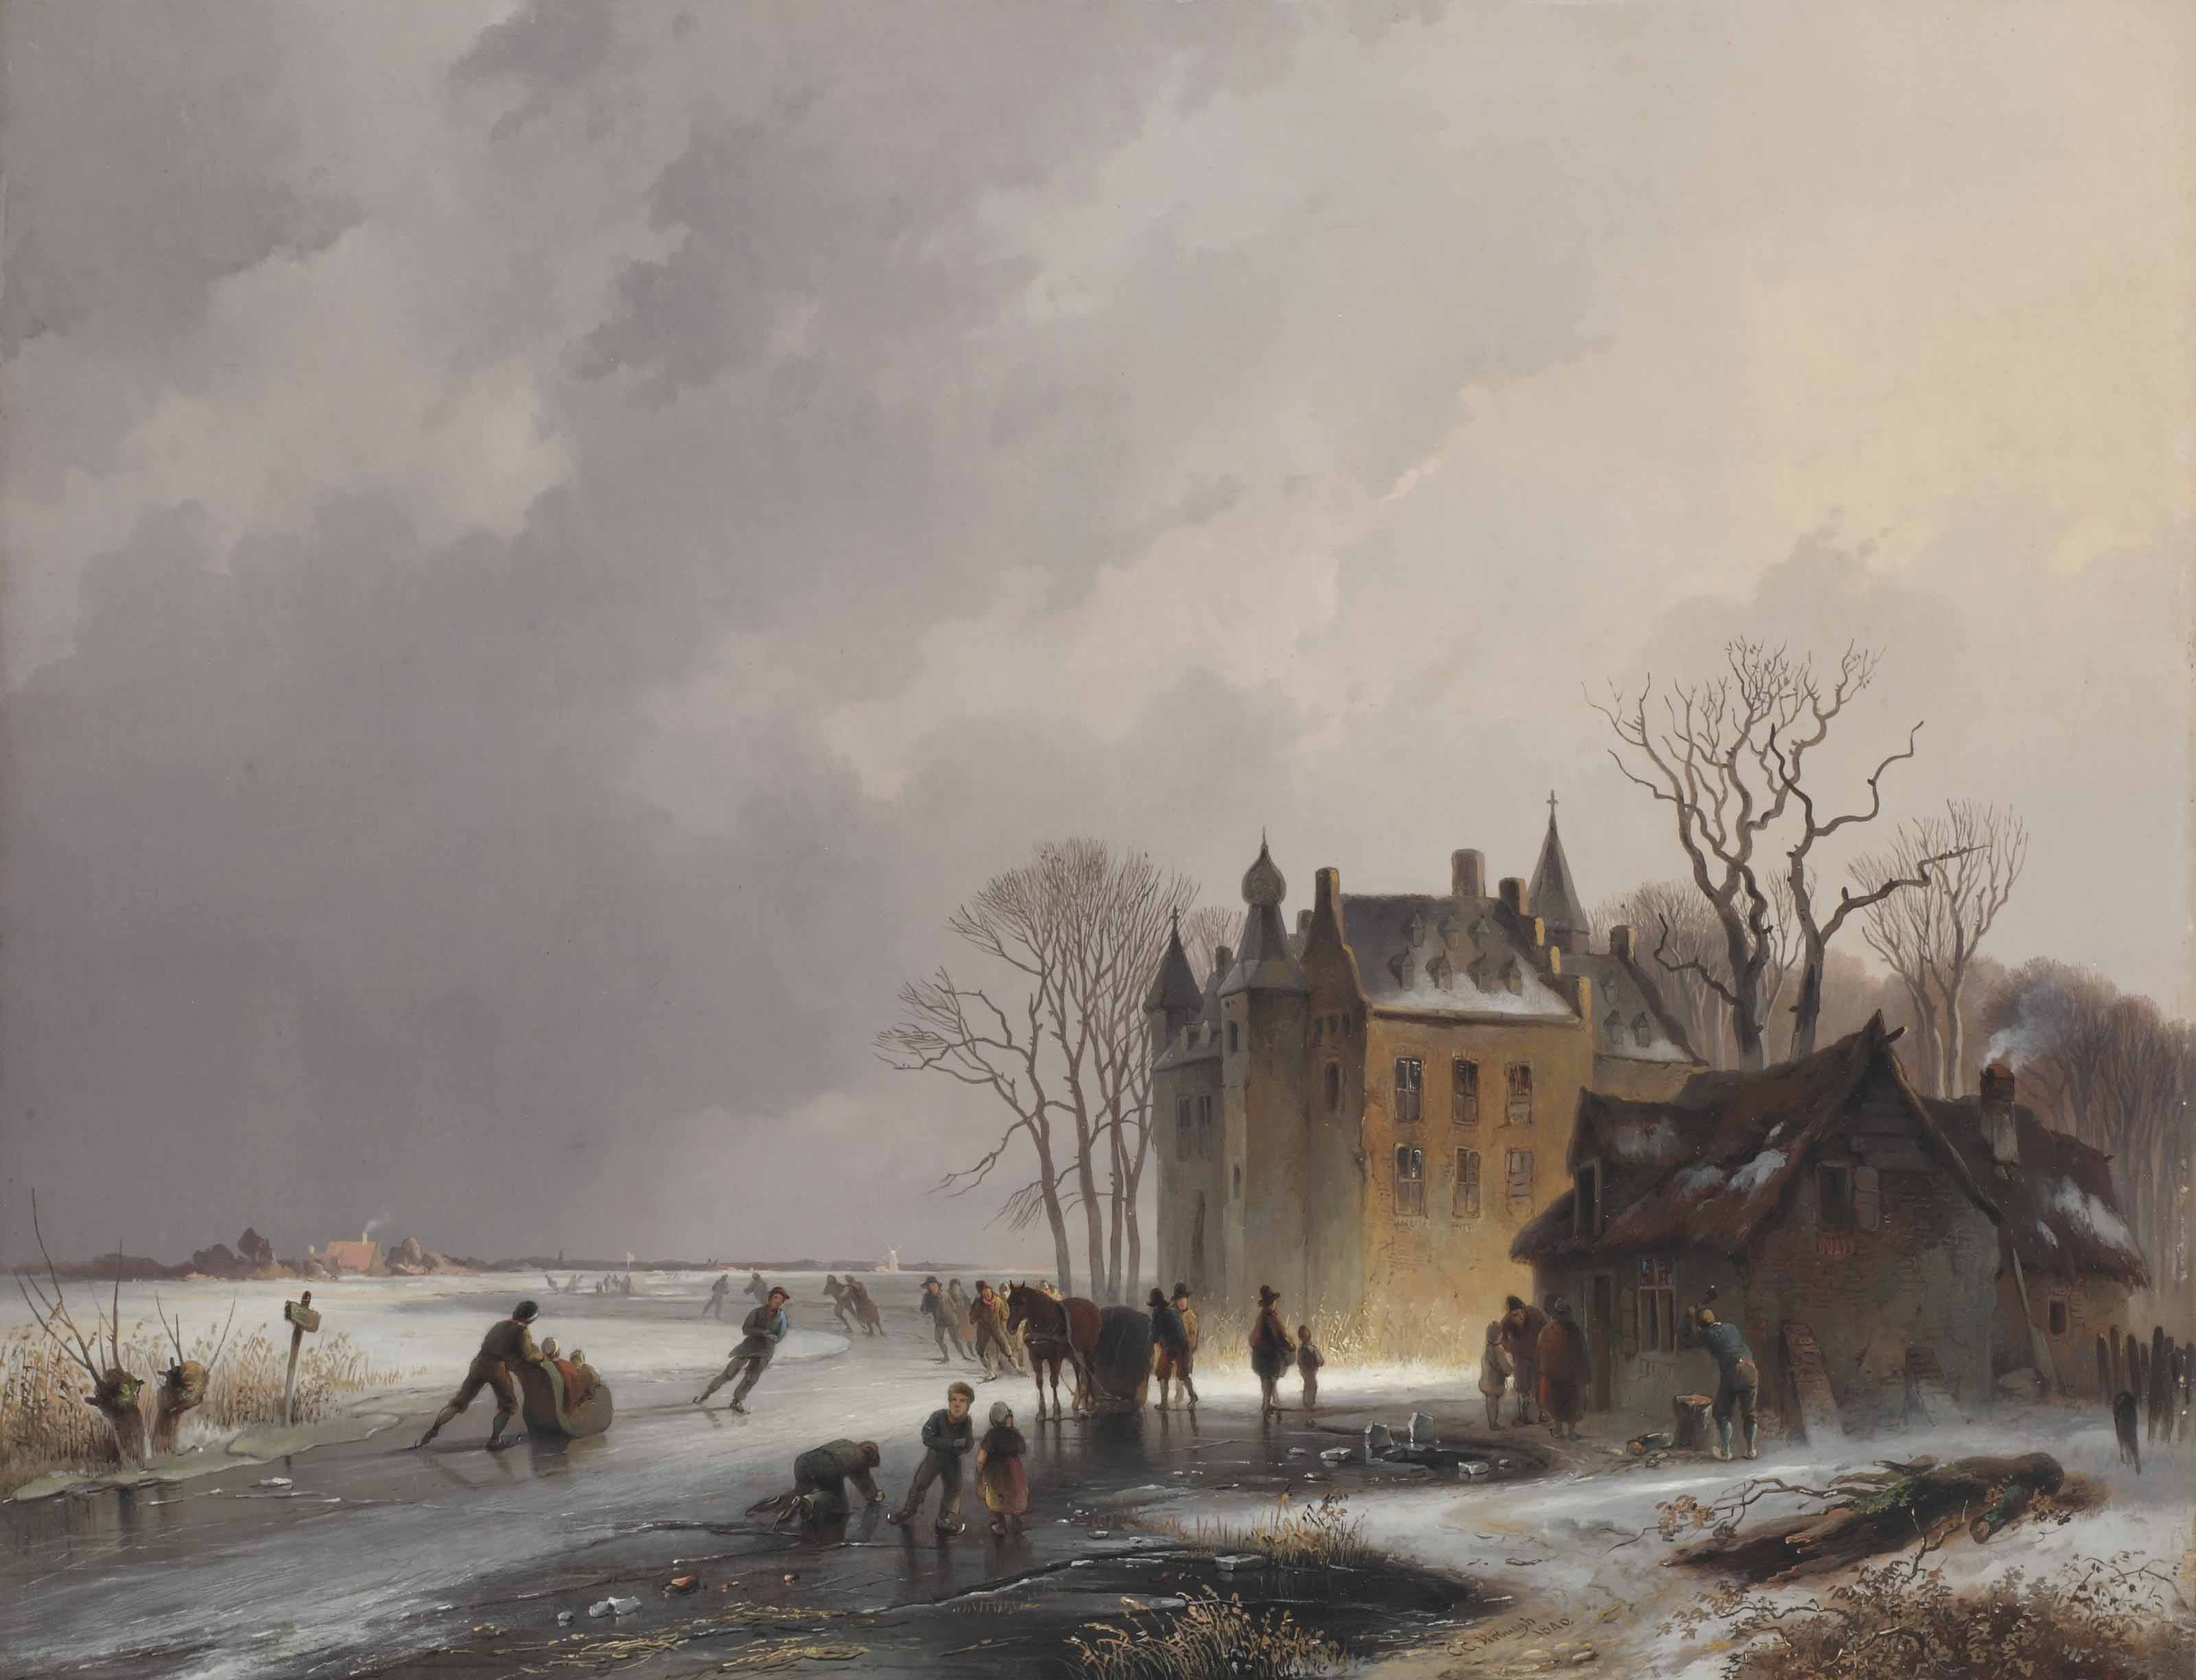 A winter landscape with skaters on a frozen lake near a castle